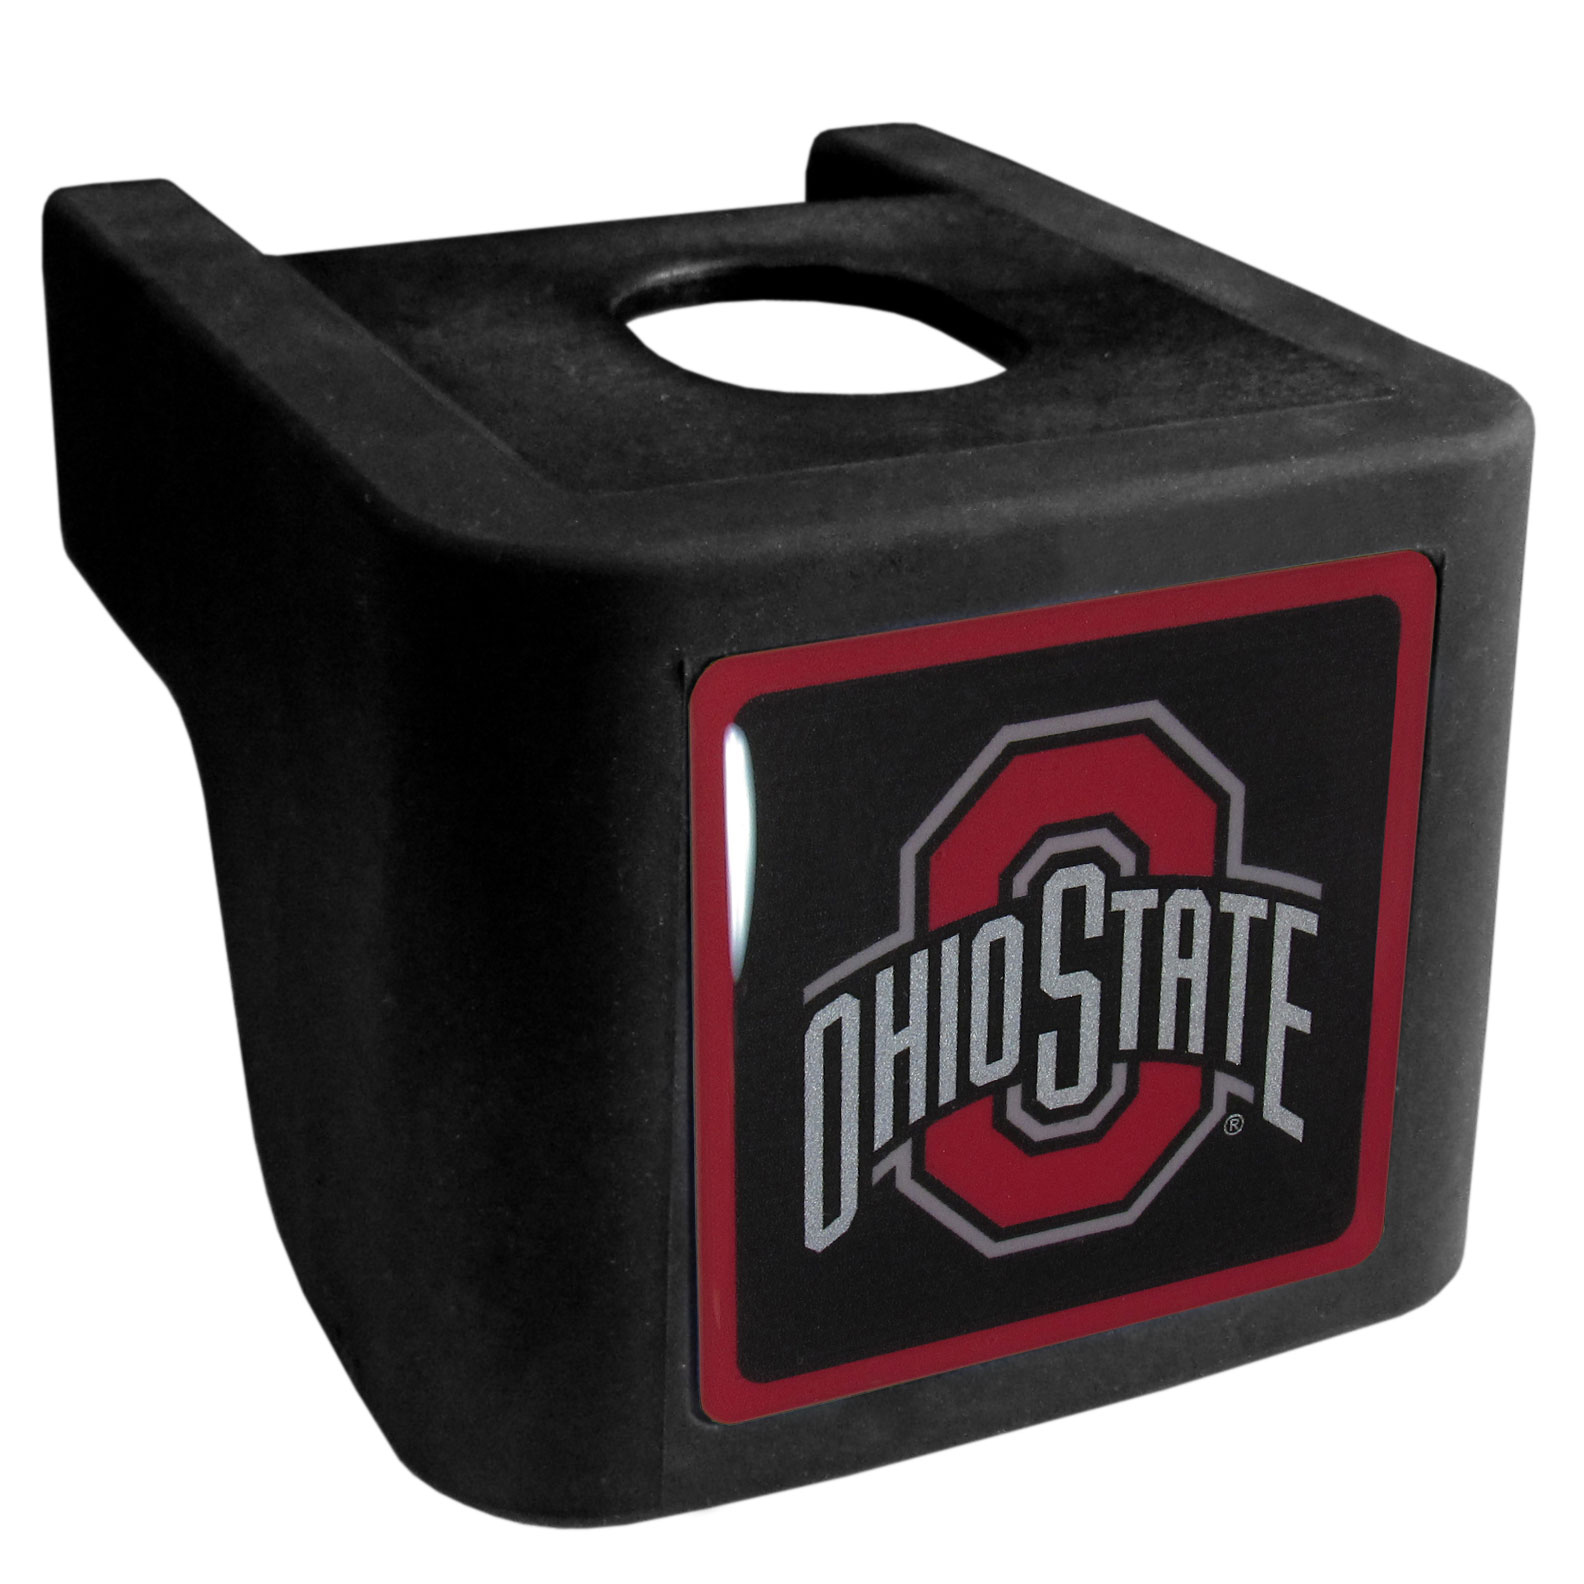 Ohio St. Buckeyes Shin Shield Hitch Cover - This unique hitch cover features a large Ohio St. Buckeyes logo. If you have ever hooked up a trailer or boat your have probably smashed your shins on the ball hitch a few times. This revolutionary shin shield hitch cover provides your much abused shins with the protection they deserve! The tough rubber hitch is rated to work with Class V hitch receivers hauling up to 17,000 gross trailer weight and 1,700 tongue weight allowing you to leave it on while hauling.